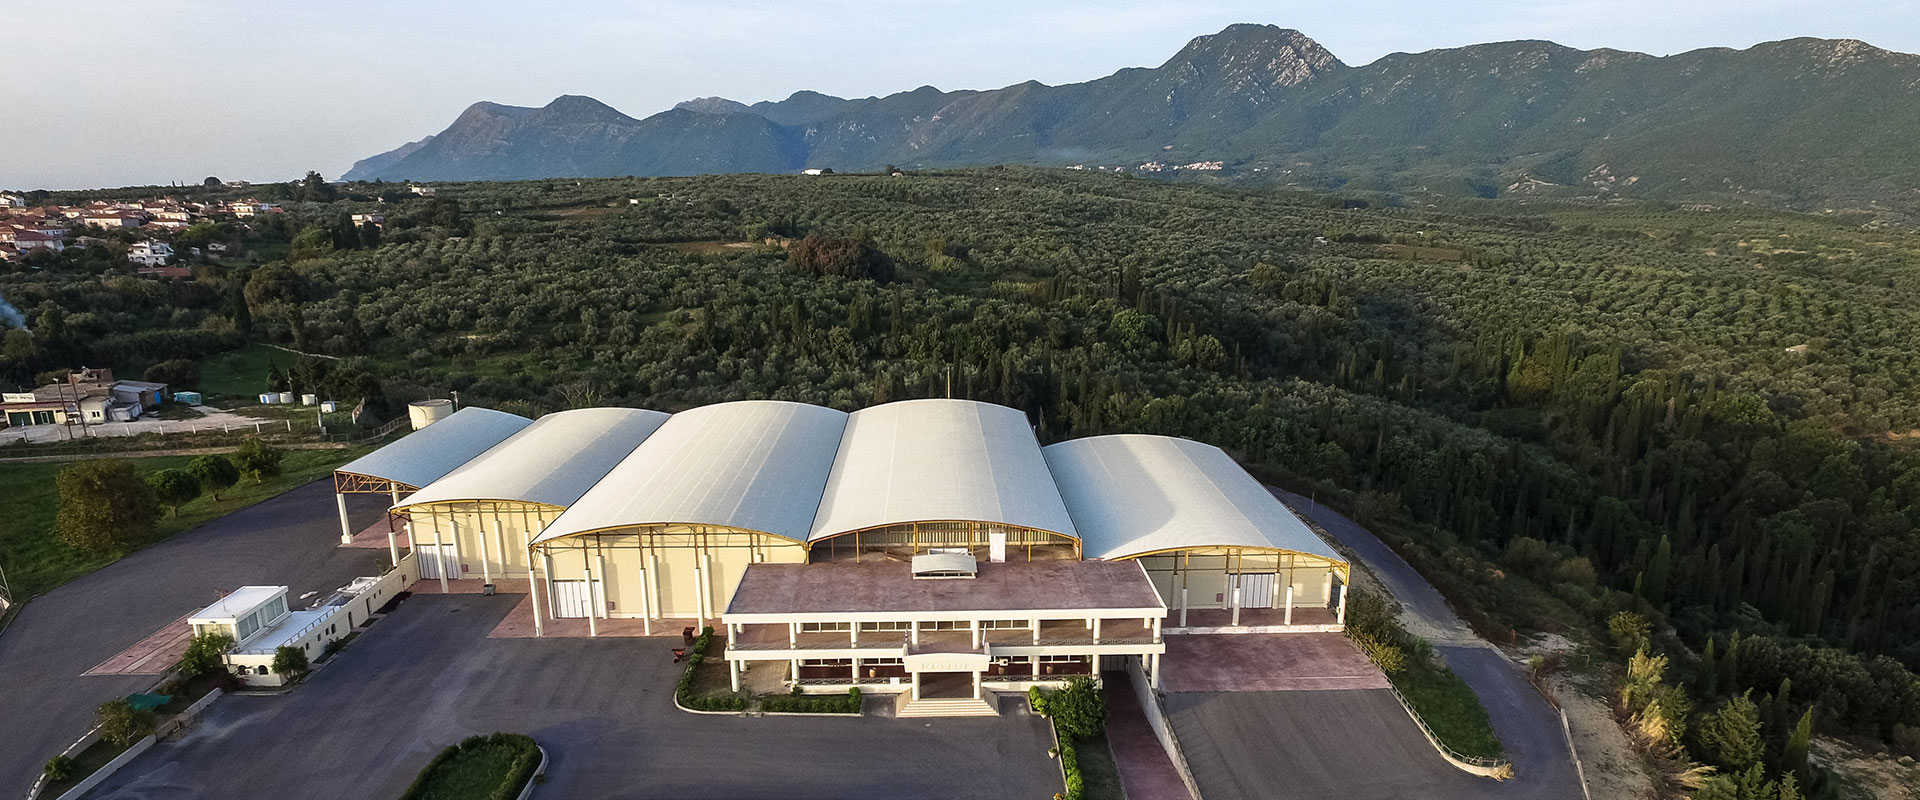 Nestor Winery - Our company